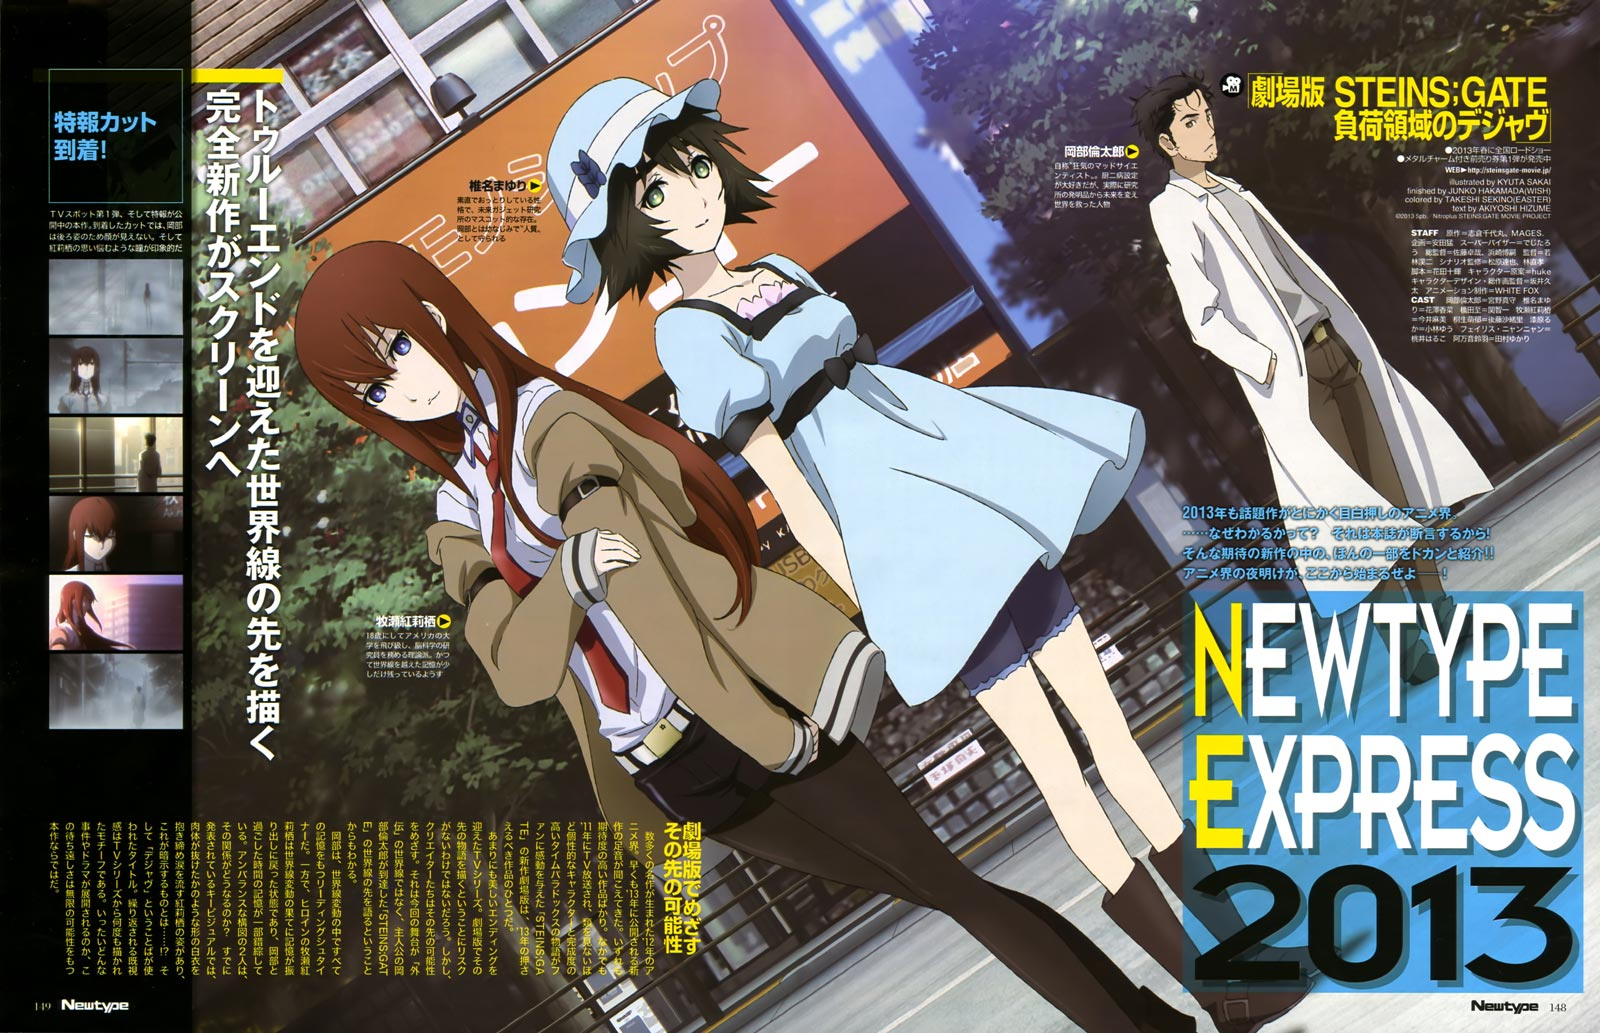 New Steins;Gate Movie Images pic 1